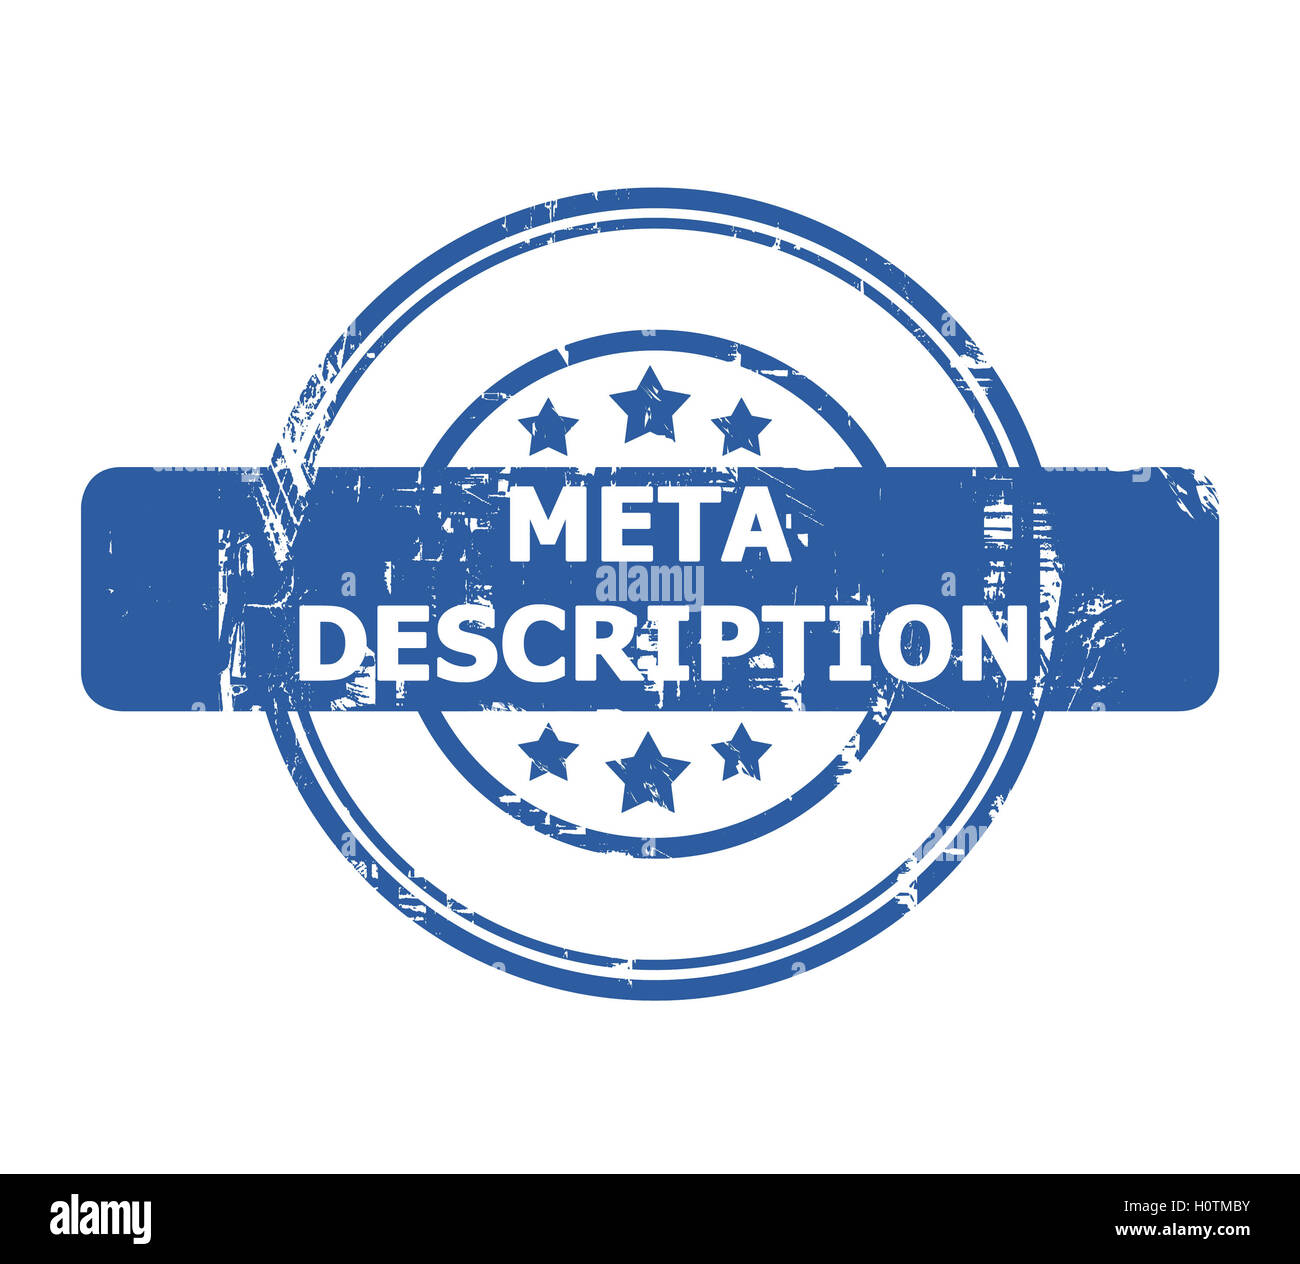 Meta Description Stamp with stars isolated on a white background. - Stock Image